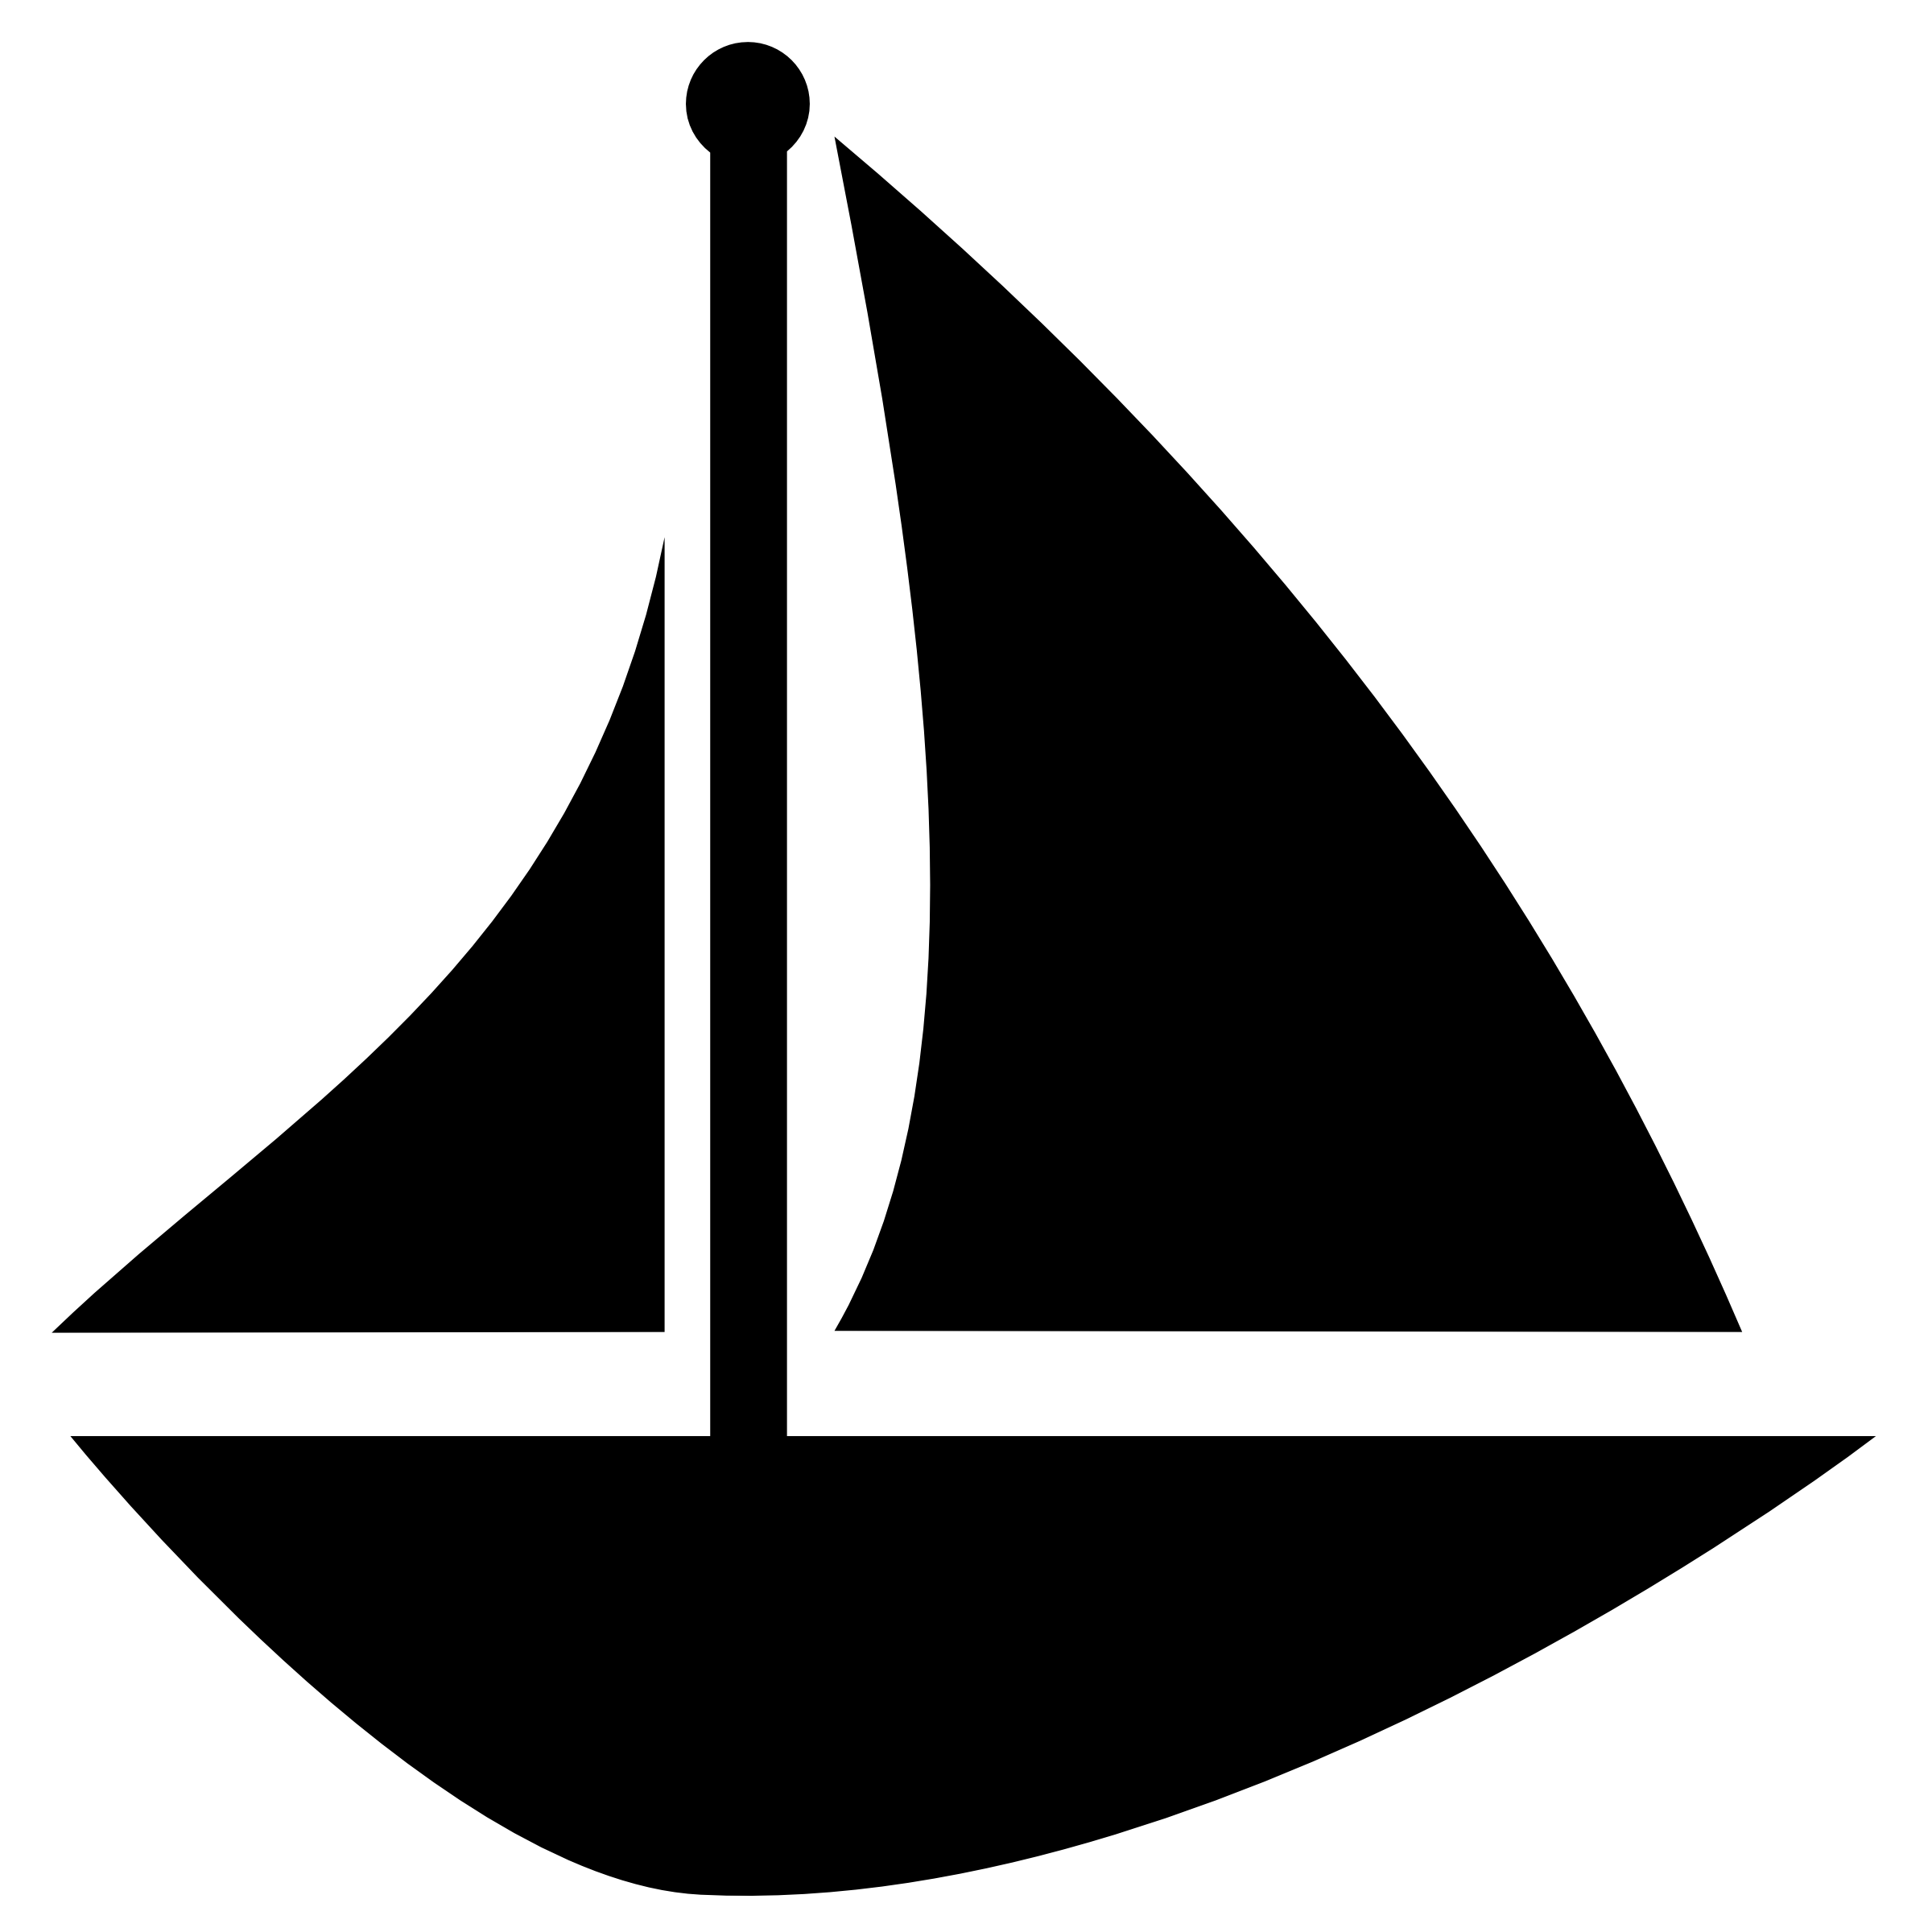 sailboat clipart transparent background